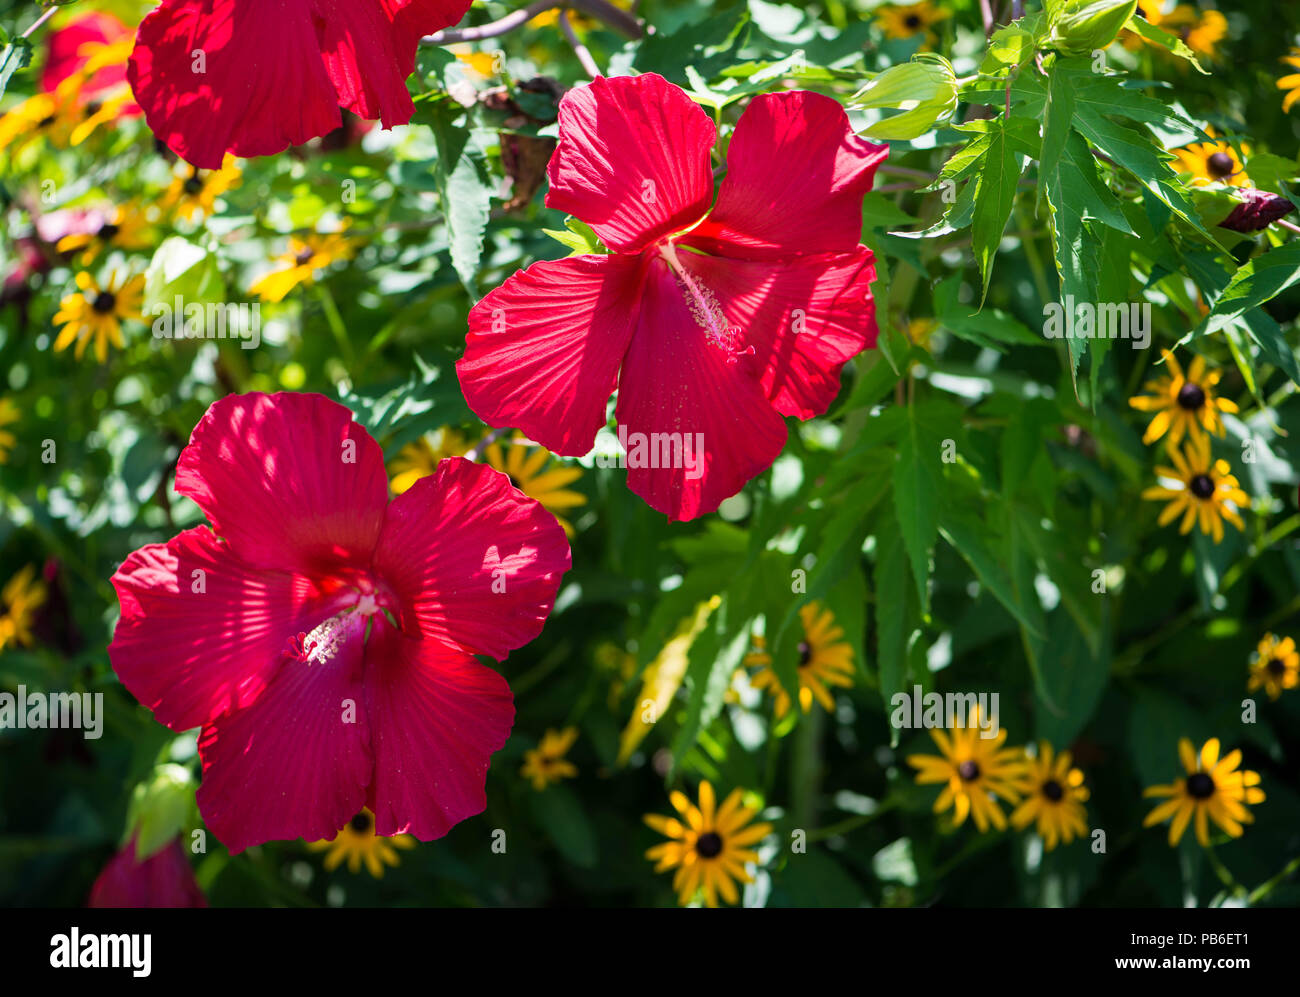 Hibiscus flowers in bloom with yellow daisies in the background hibiscus flowers in bloom with yellow daisies in the background izmirmasajfo